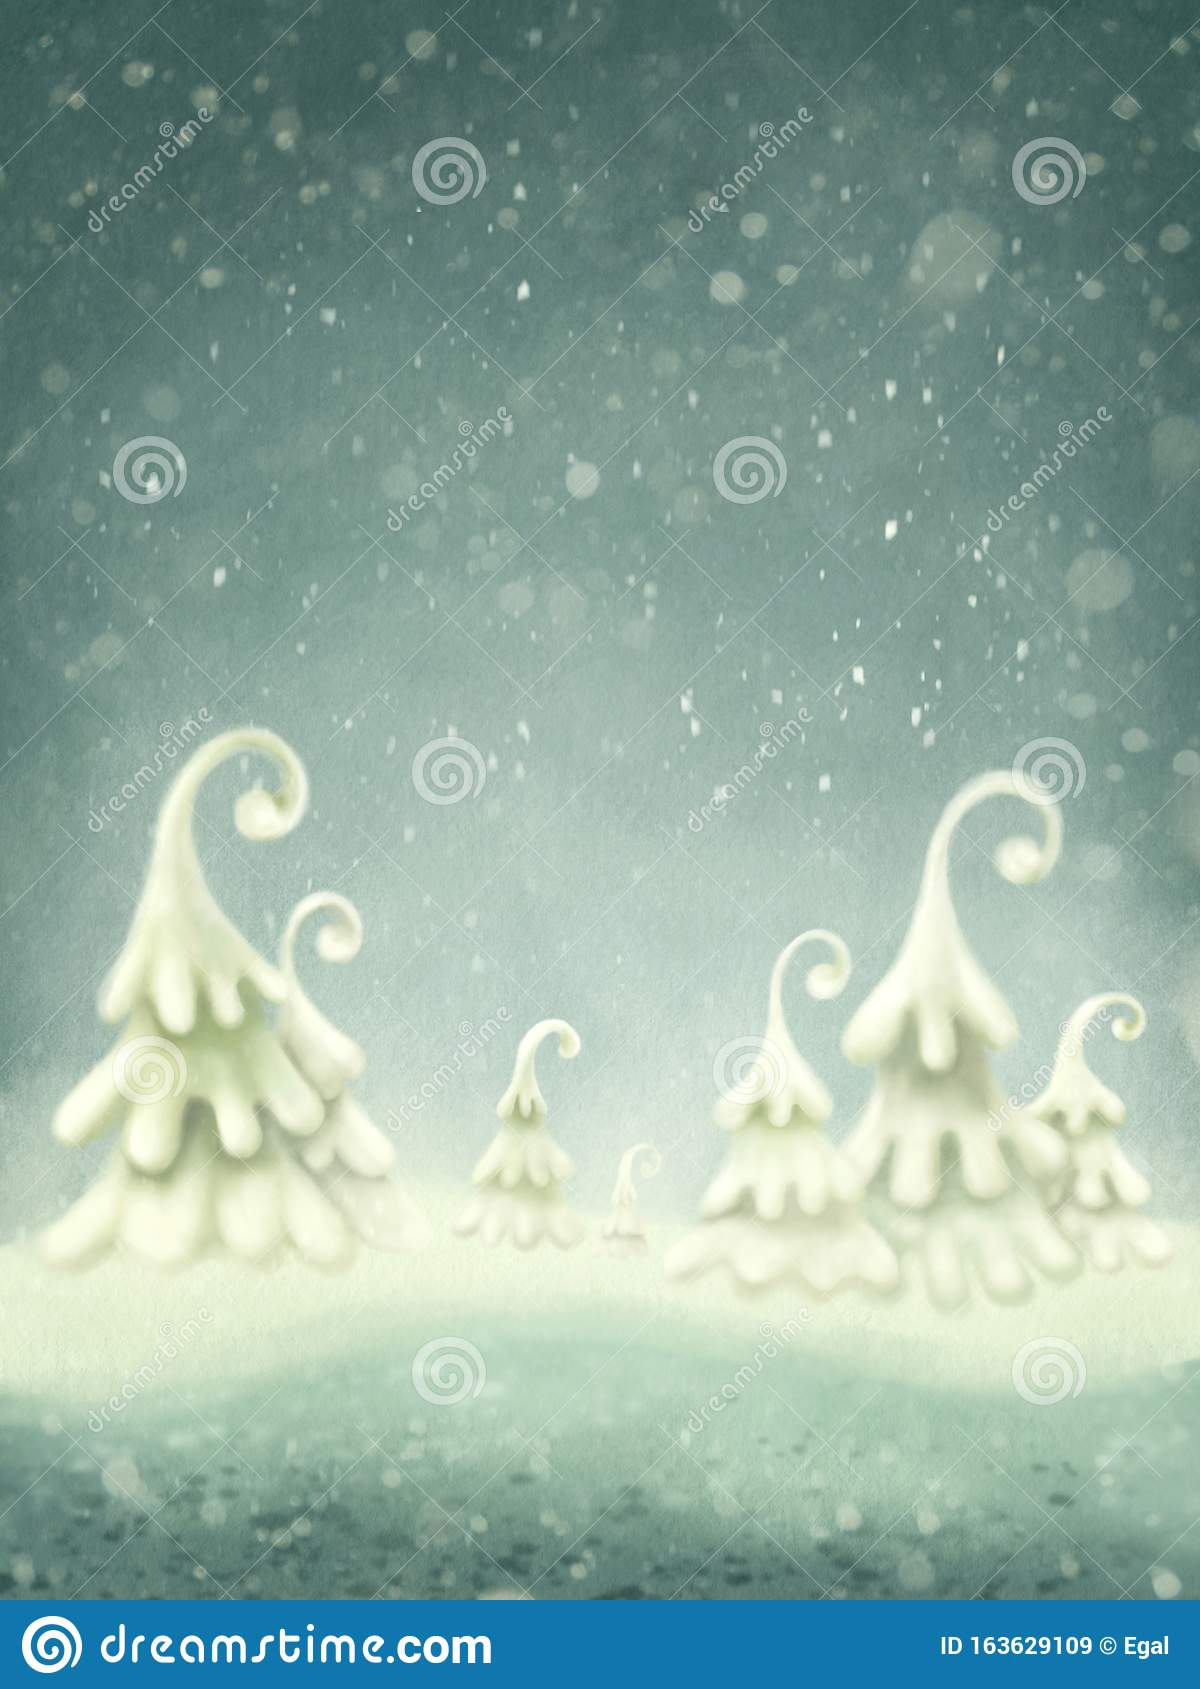 Abstract winter magic landscape